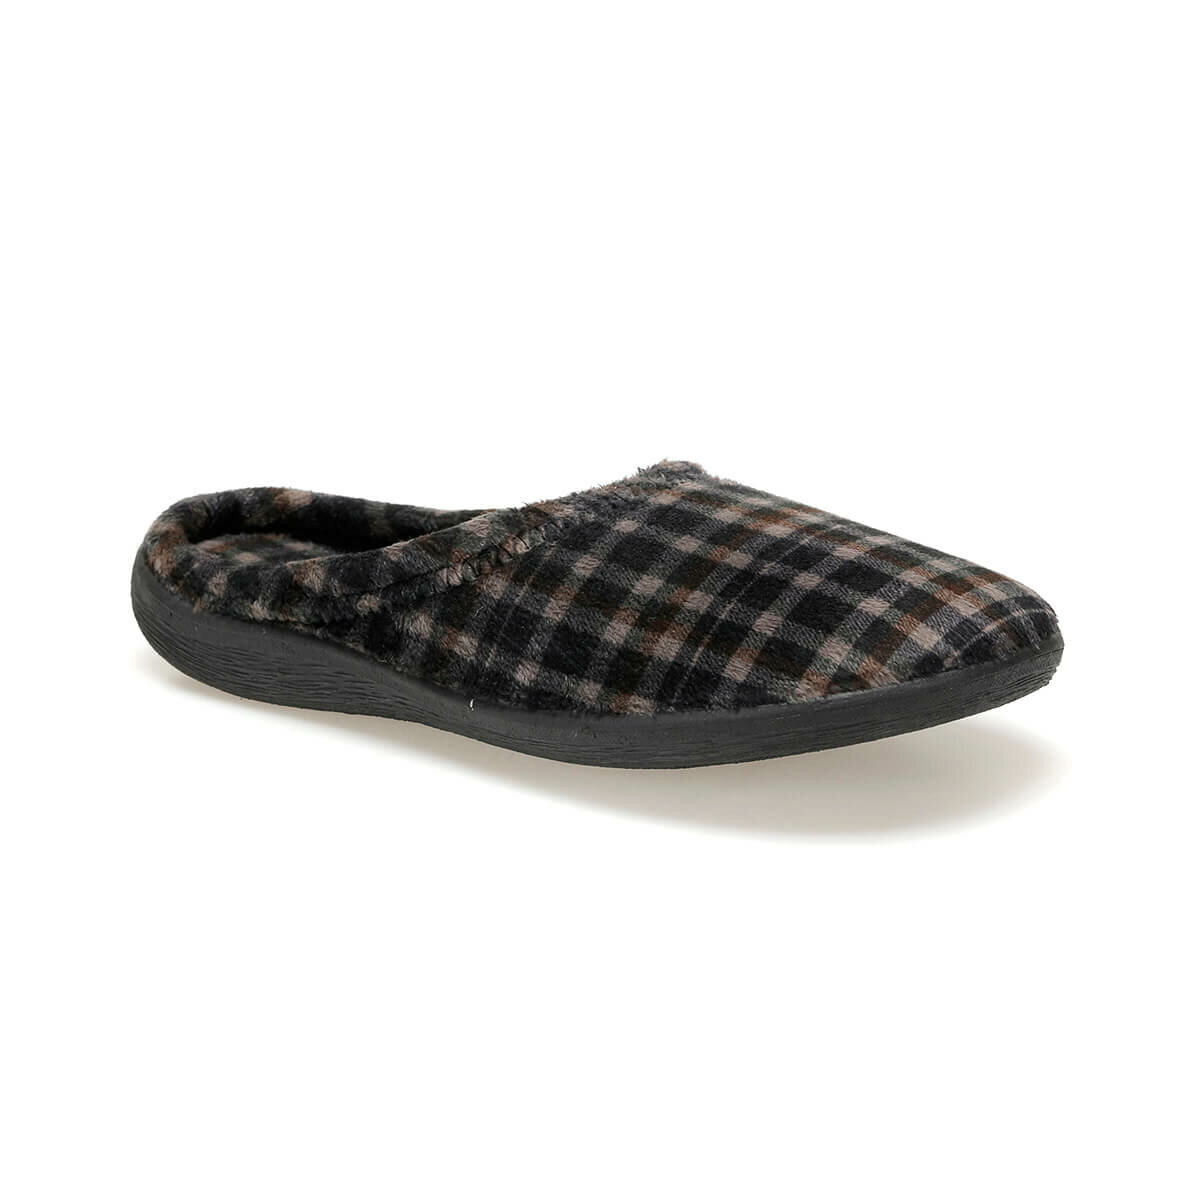 FLO 92.600086.M Black Male Home Slipper Polaris